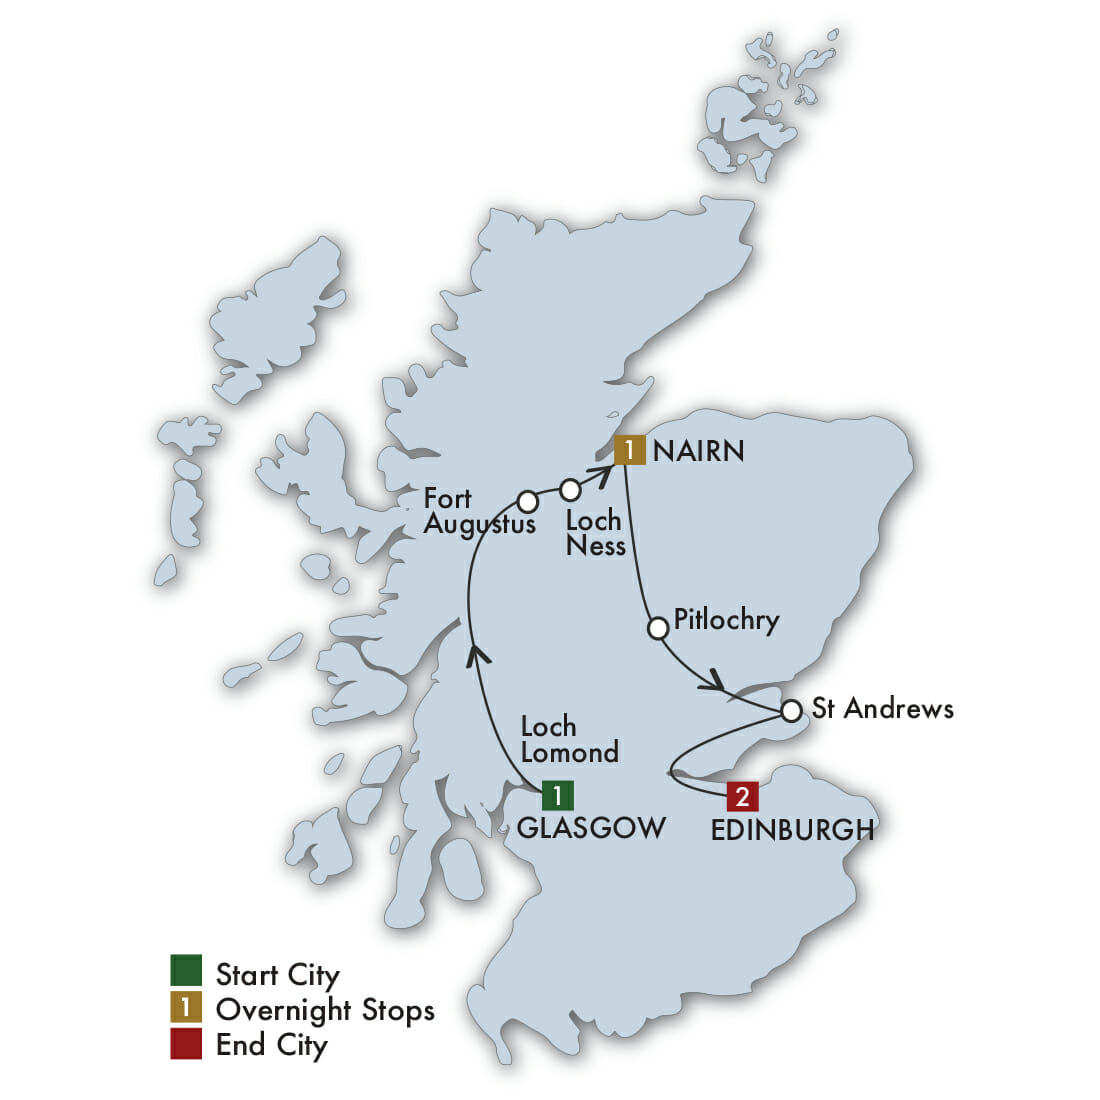 CIE Tours Tour Map  - 2021 - 5 Day Taste Of Scotland